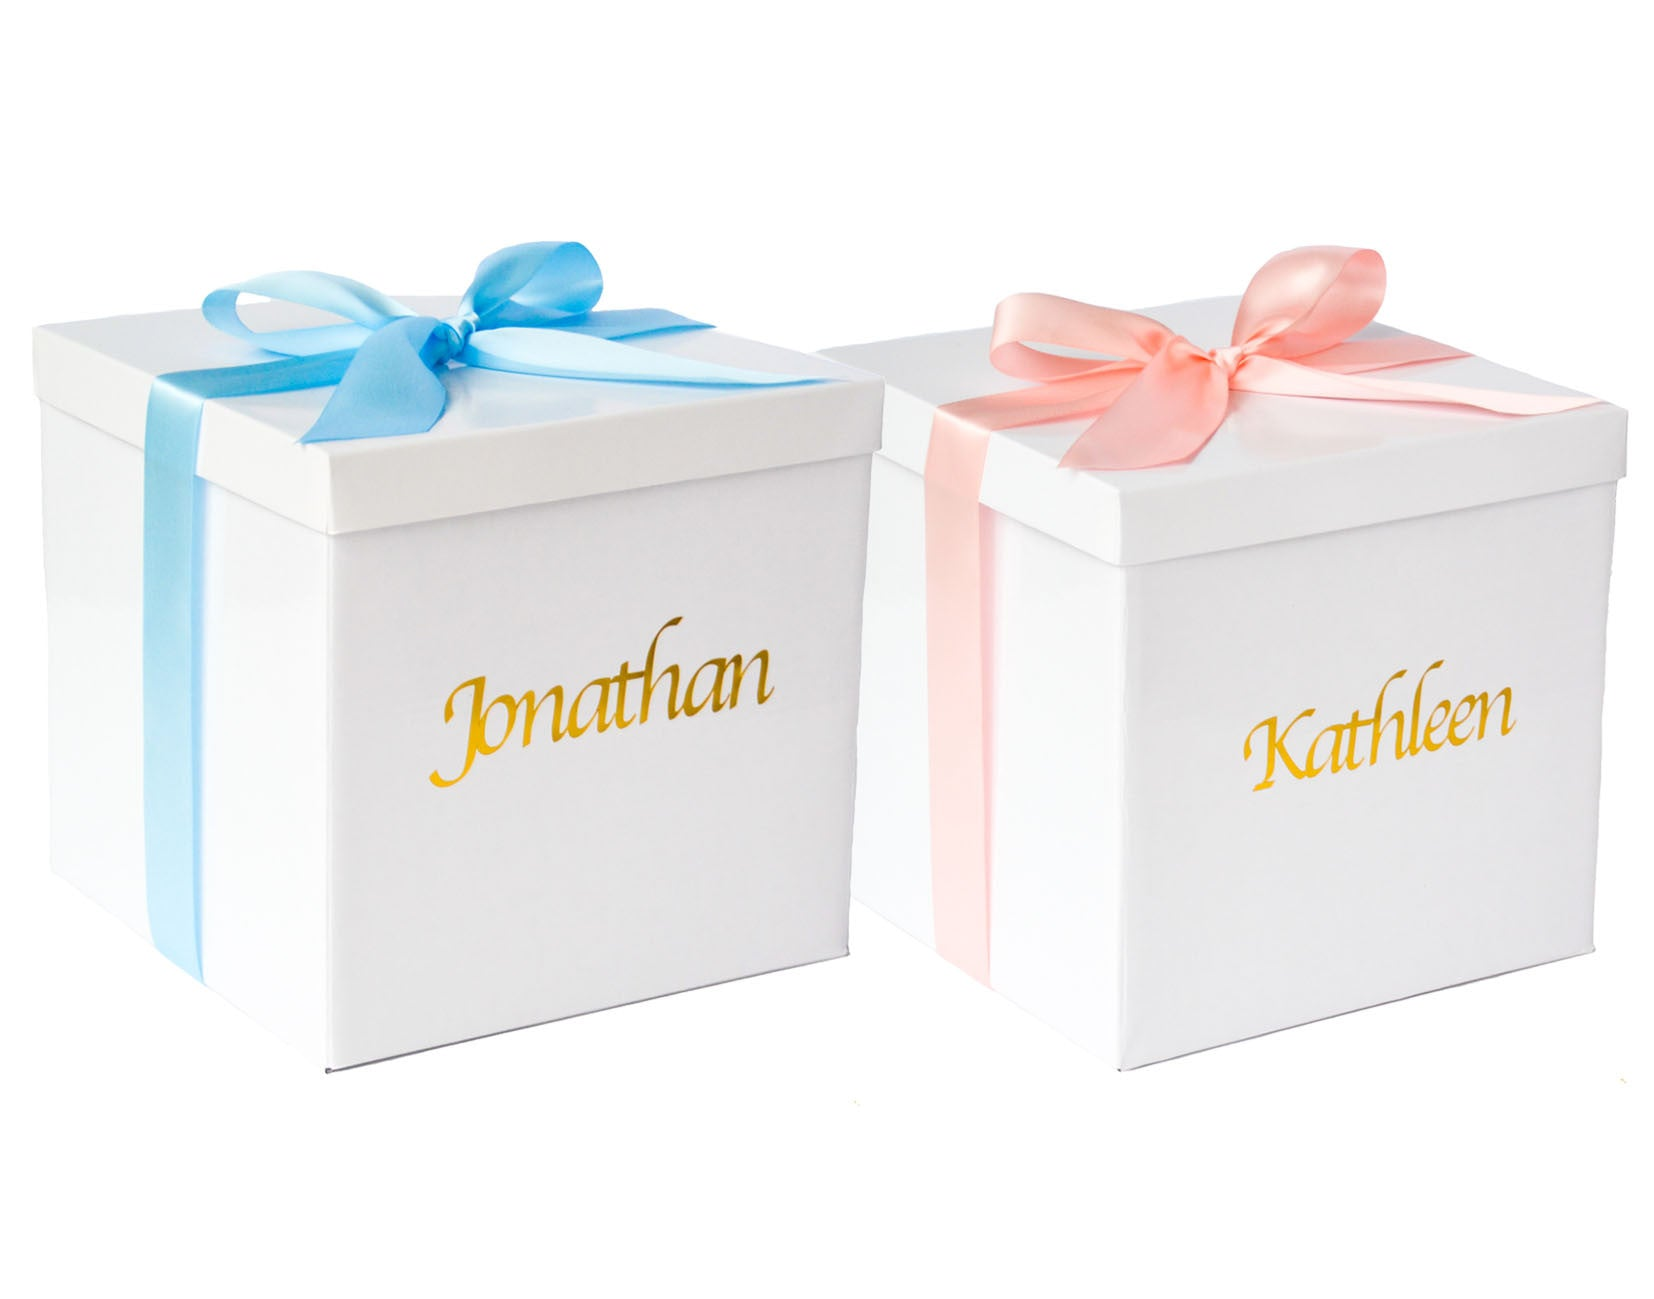 Personalised baby gift packaging build your own baby hamper personalised baby gift packaging card negle Choice Image